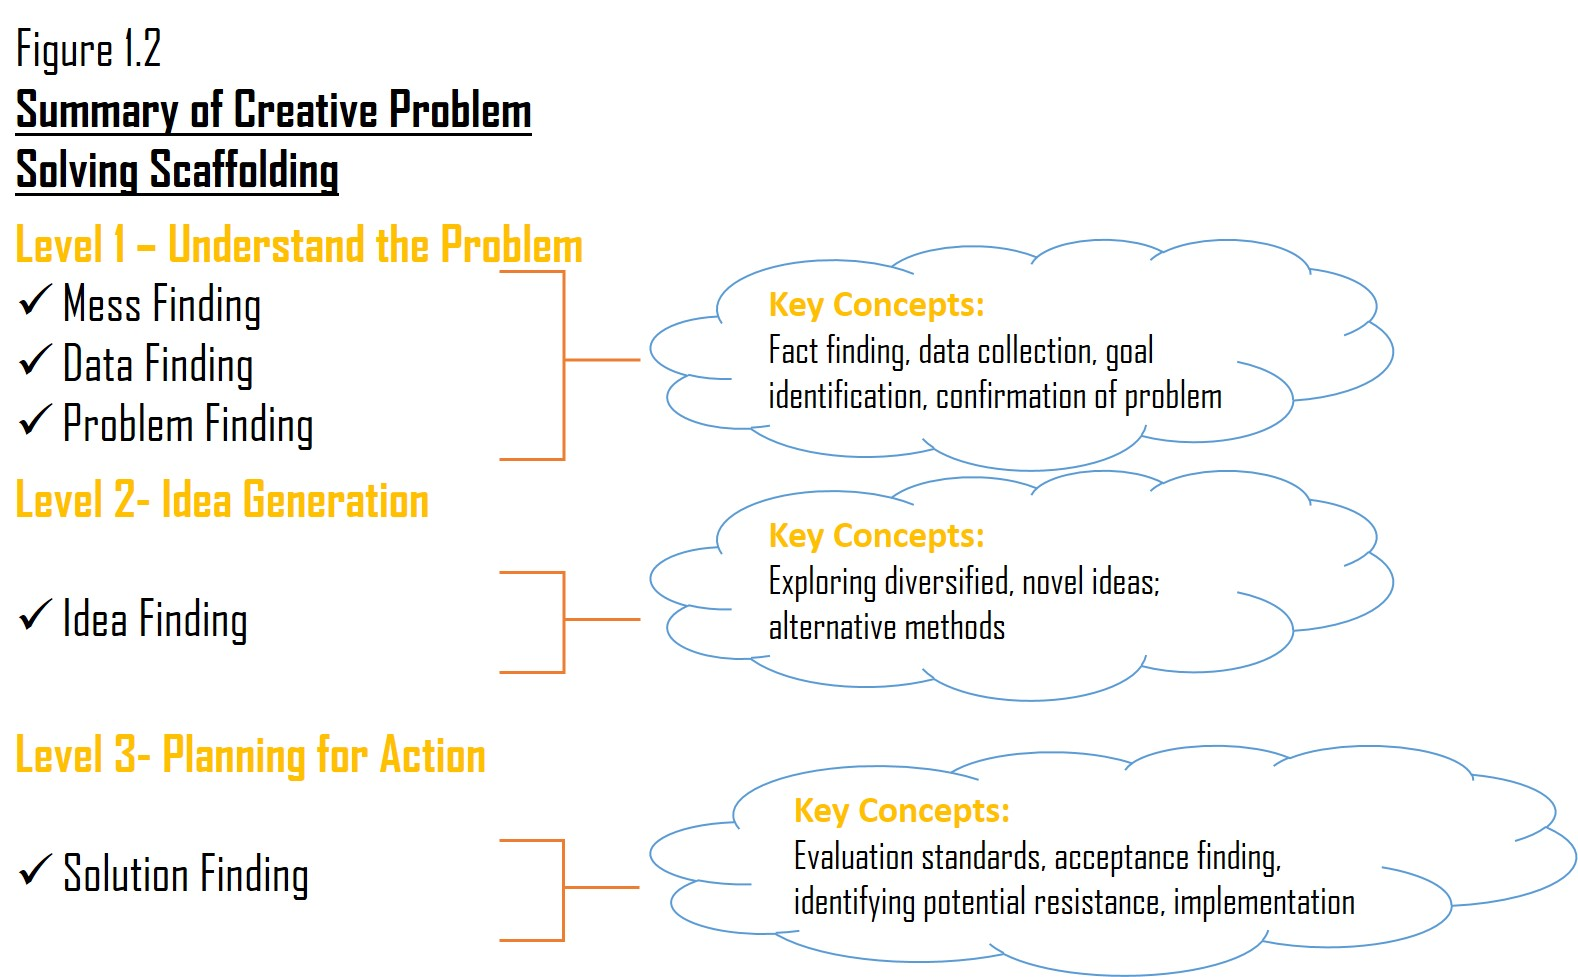 Diagram of the Creative Problem Solving Model